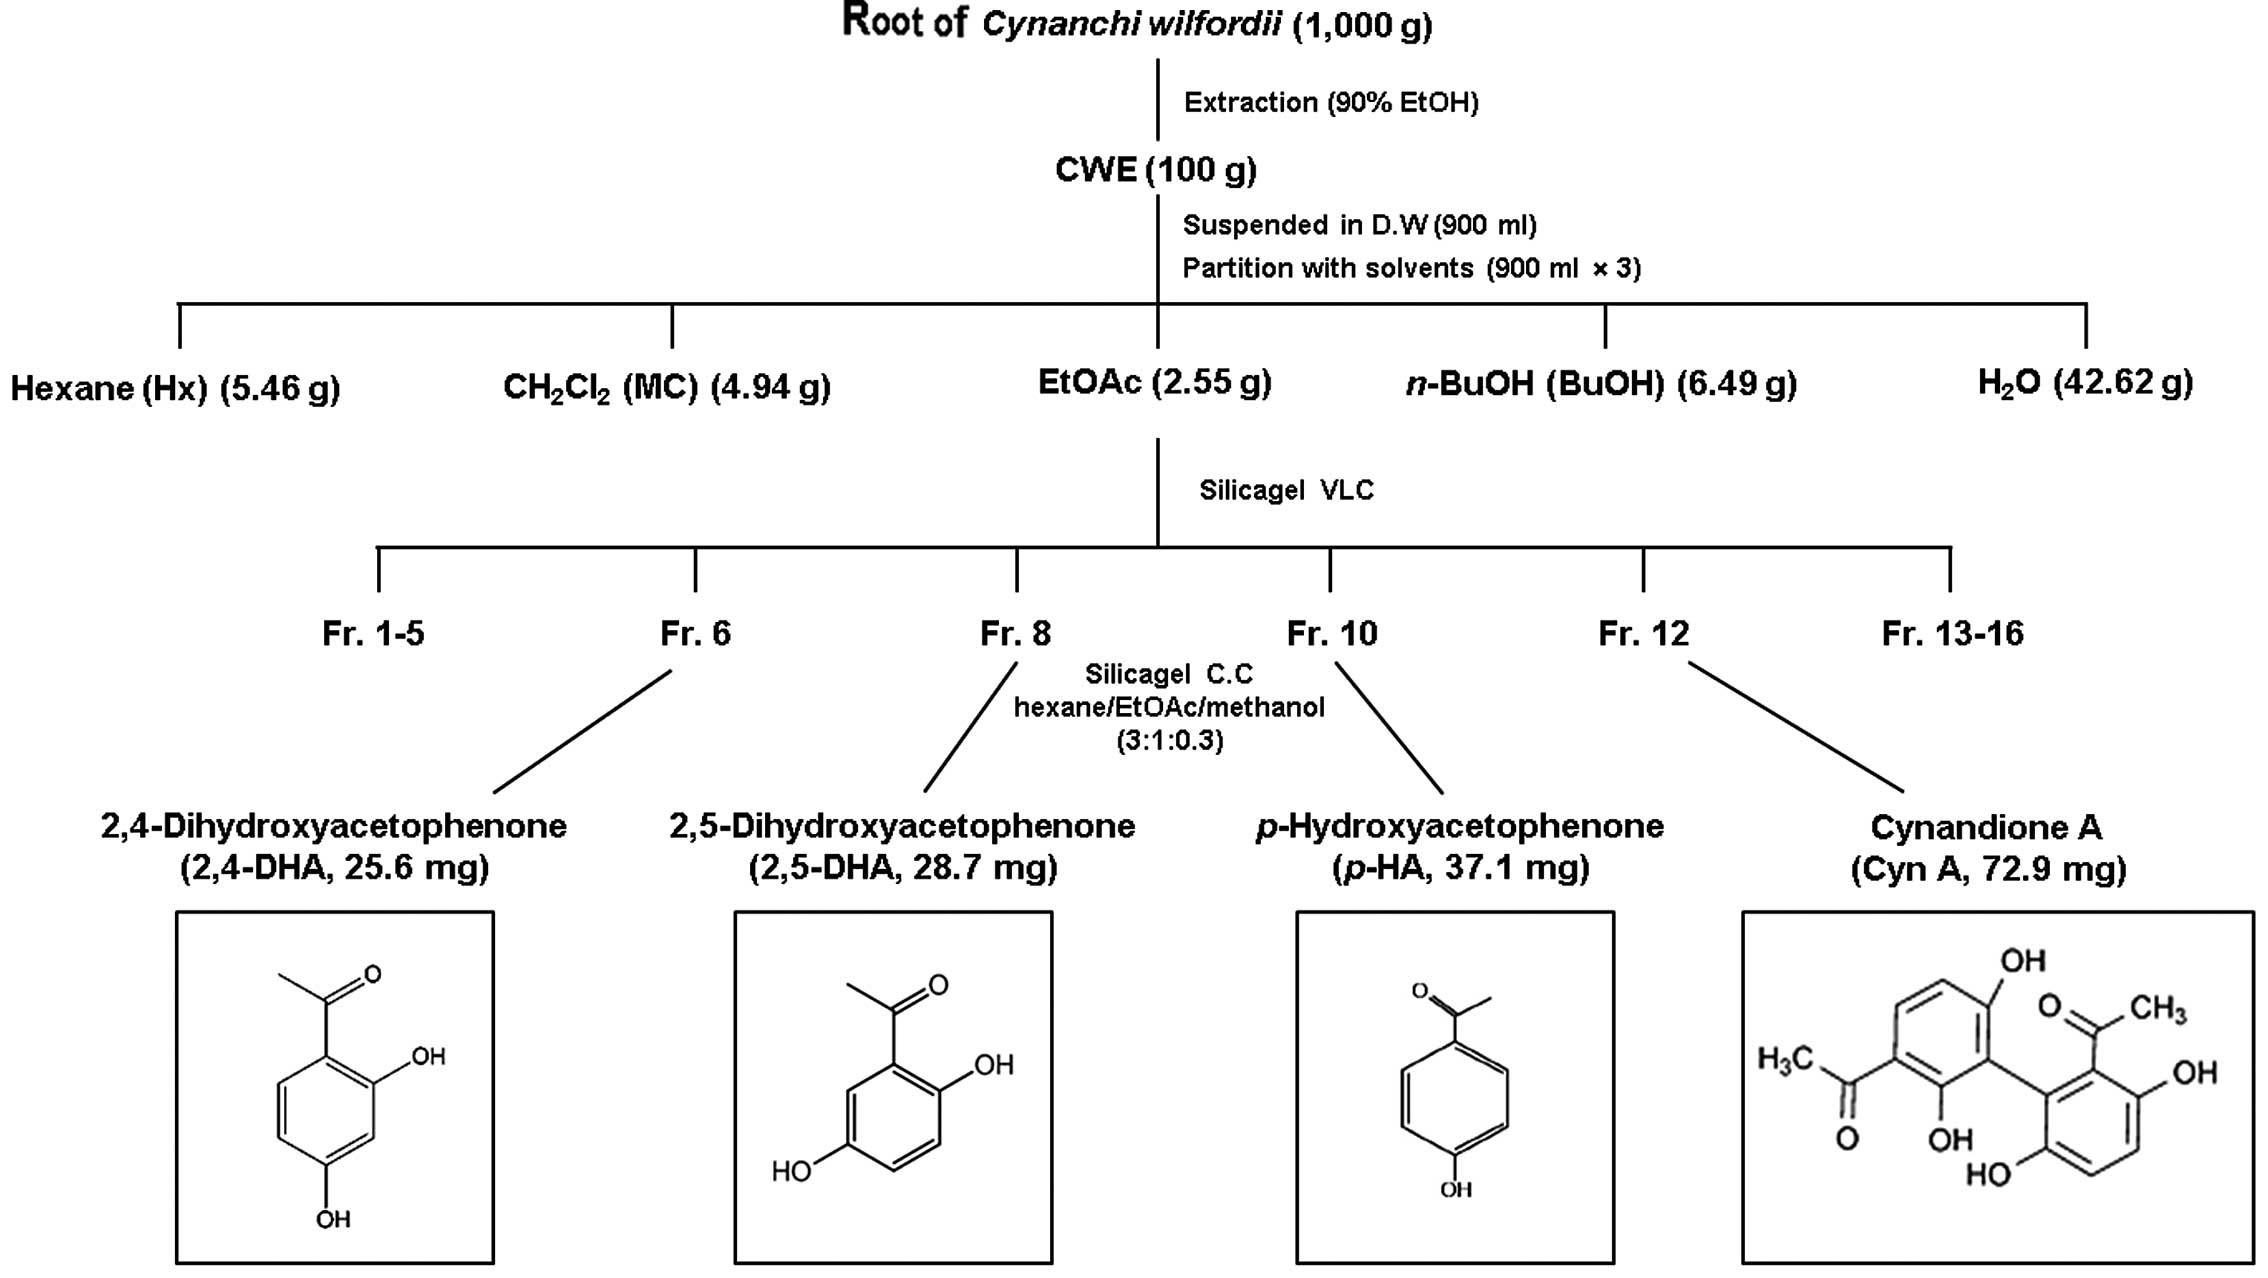 Figure 6 Extraction and fractionation of root extract Cynanchum wilfordii schematic diagram CH2Cl2 dichloromethane soluble fraction EtOAc